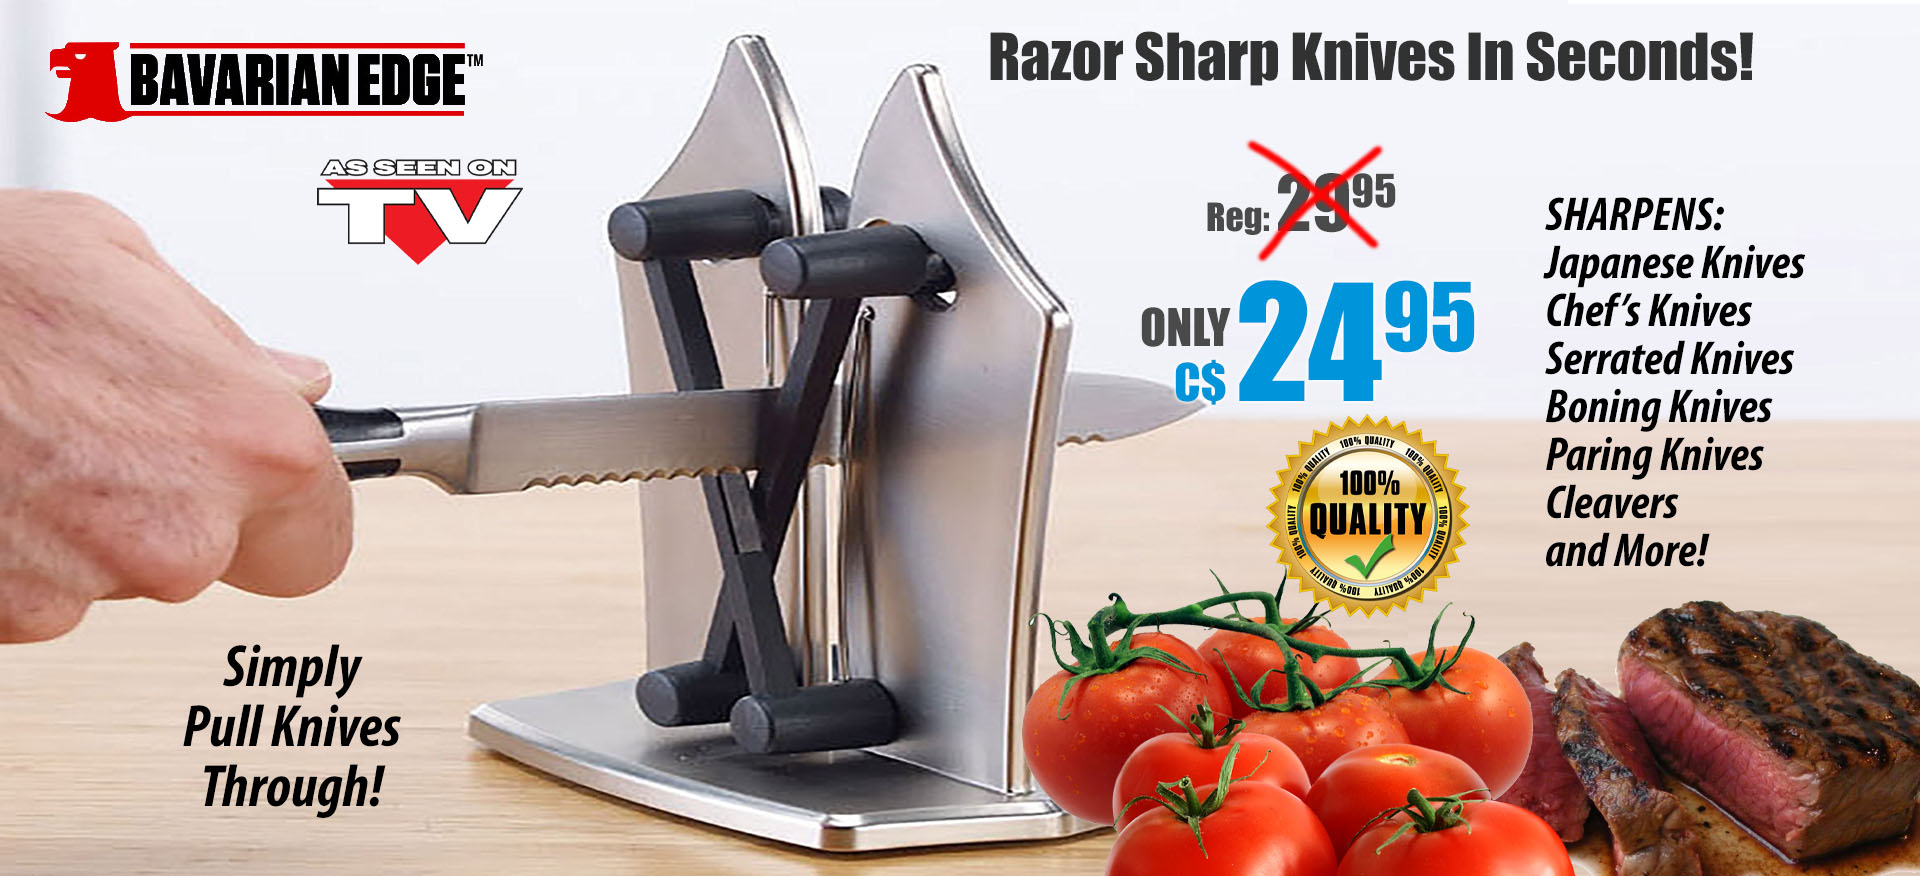 Bavarian Edge™ Knife Sharpener